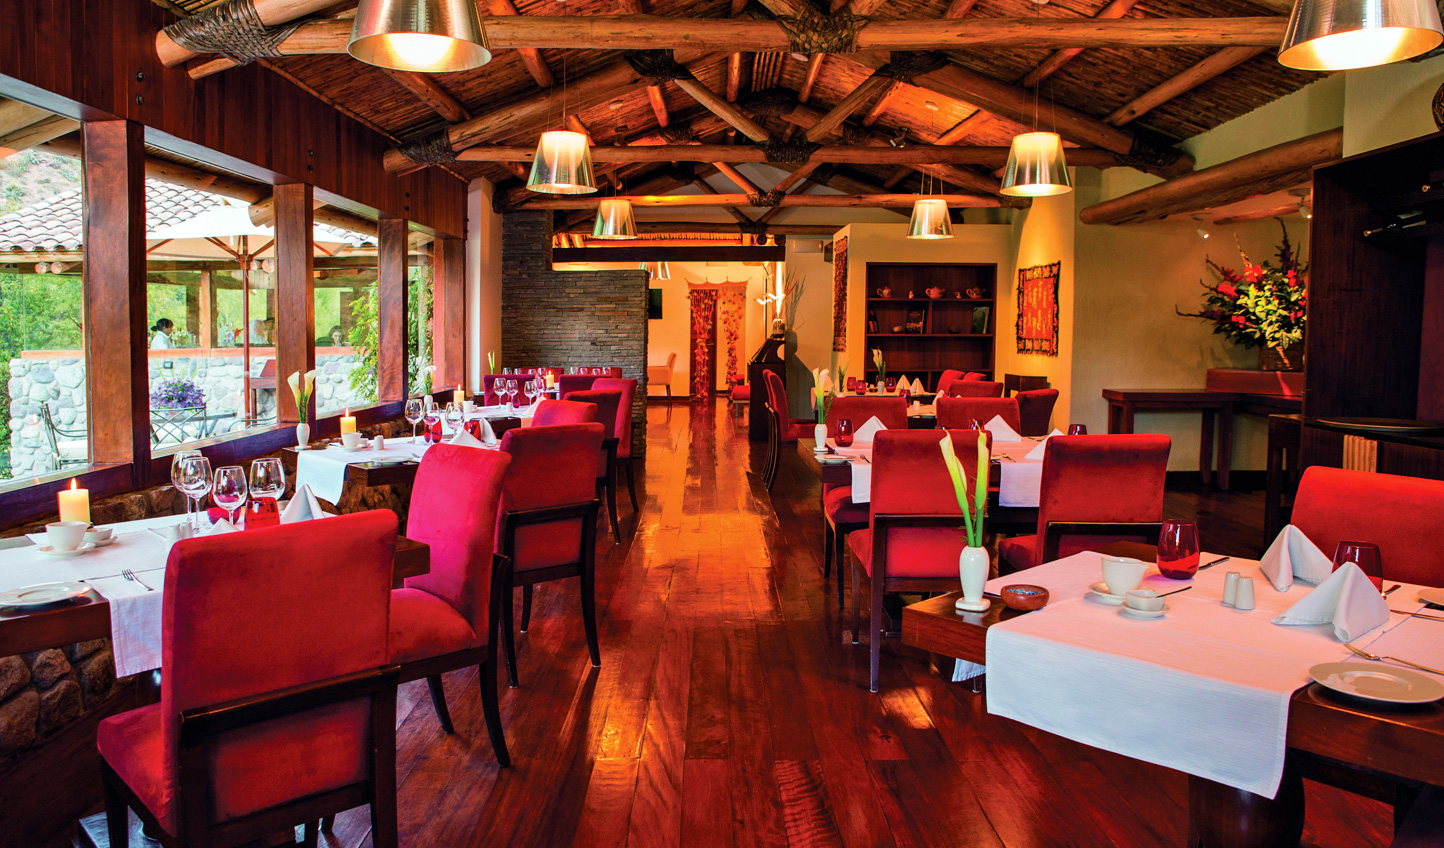 Ingredients grown in the hotel's organic gardens goes into Peruvian fusion cuisine at El Huerto